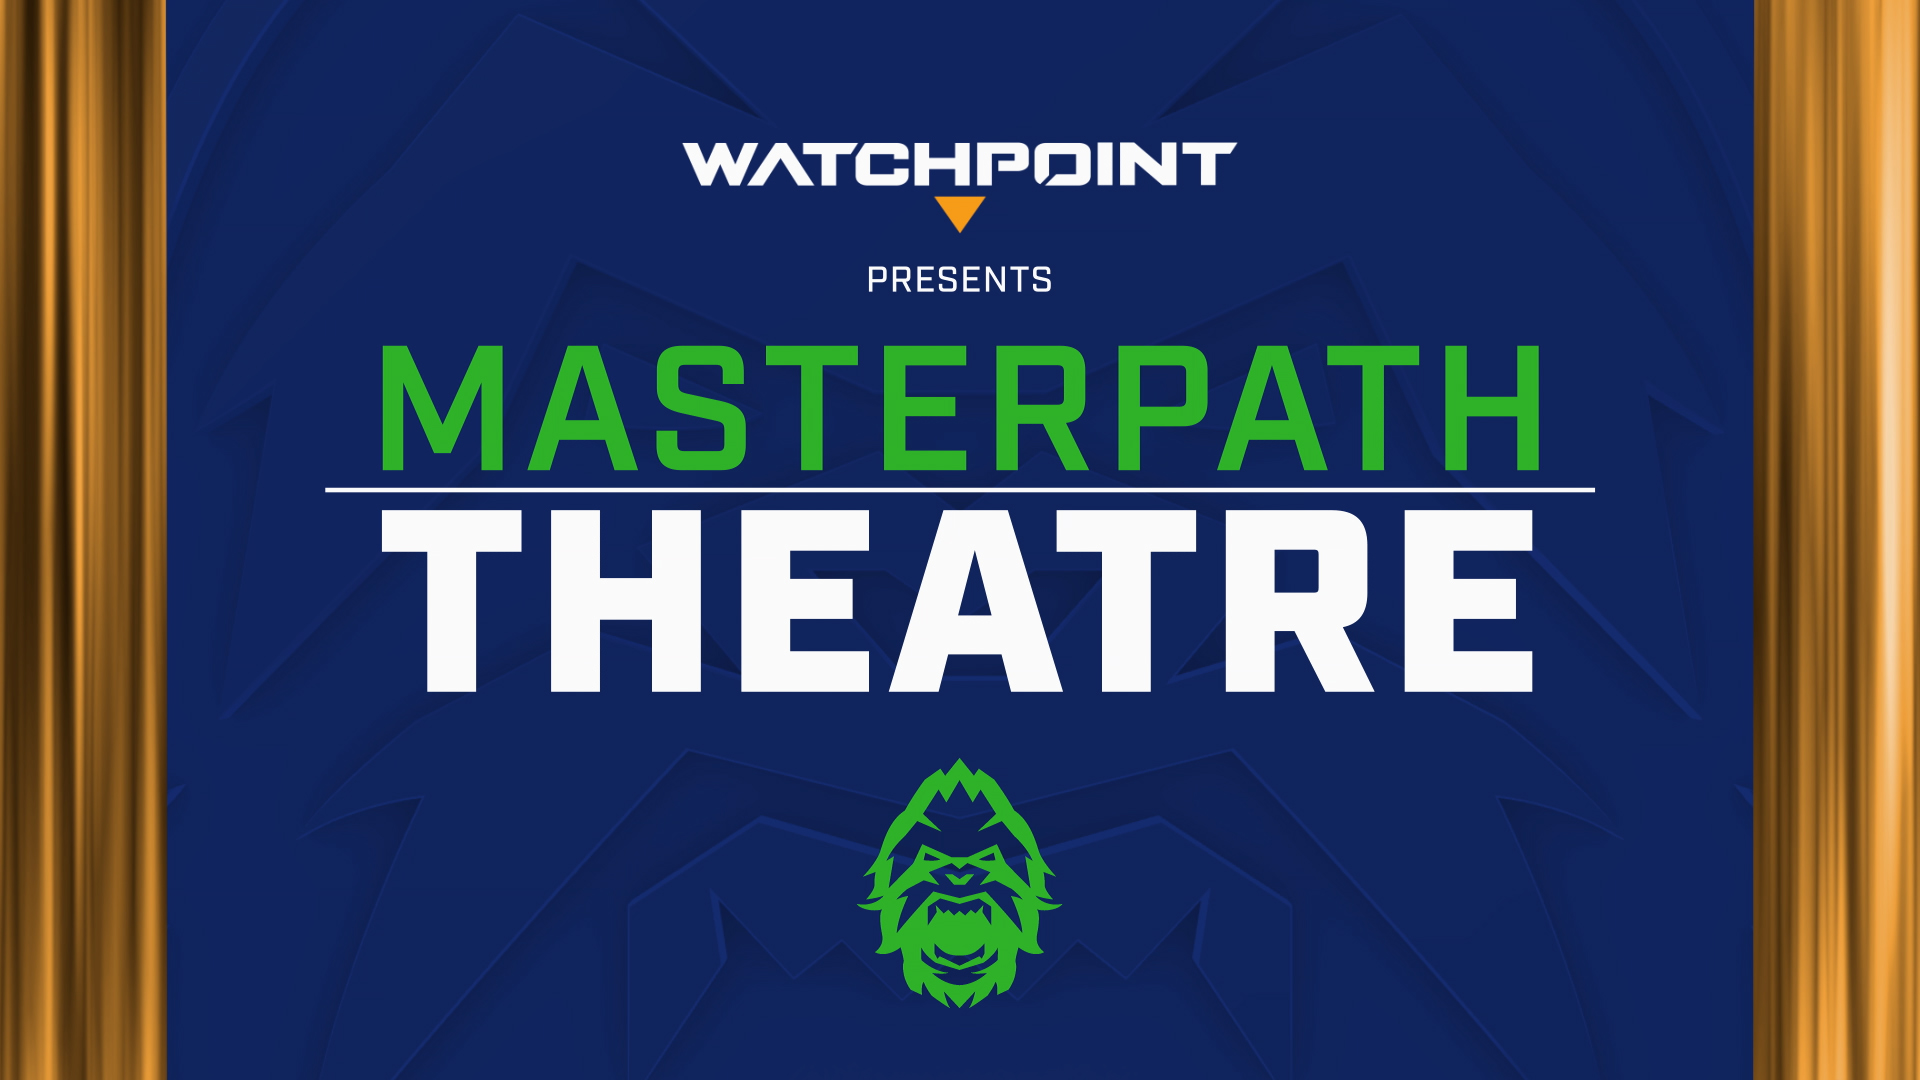 Watchpoint presents MasterPath Theatre: The Vancouver Titans